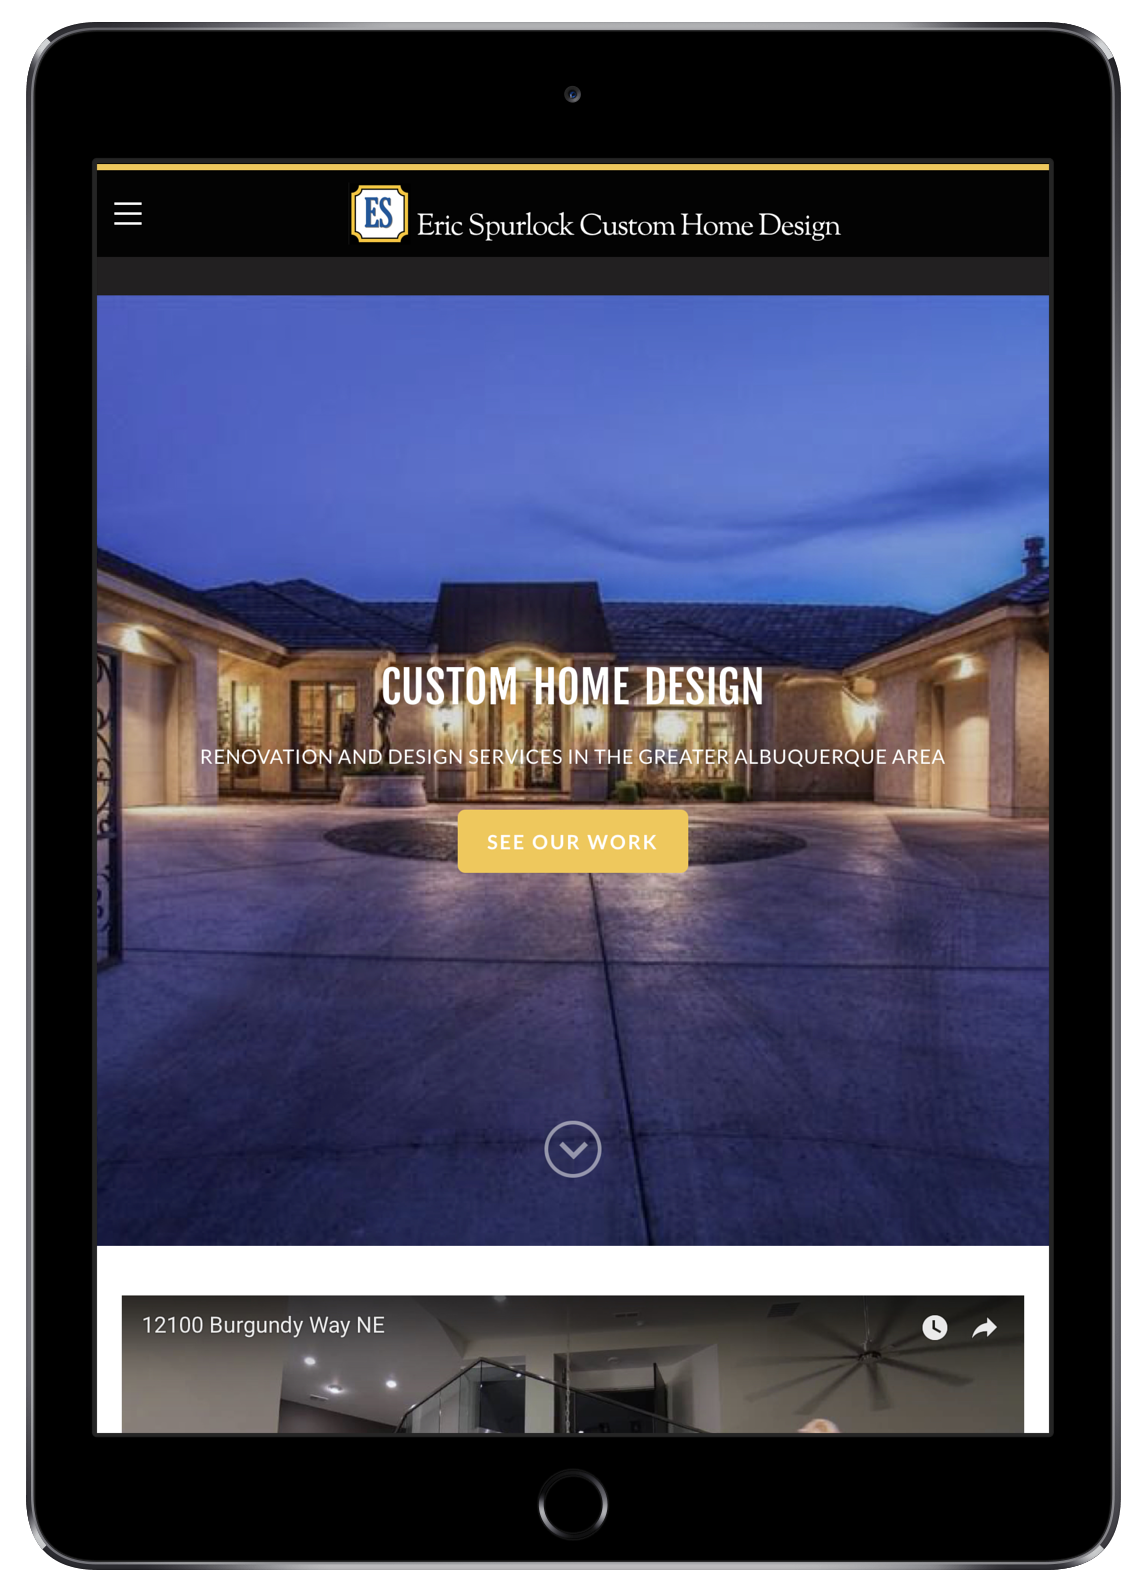 Eric Spurlock Custom Home Design on iPad